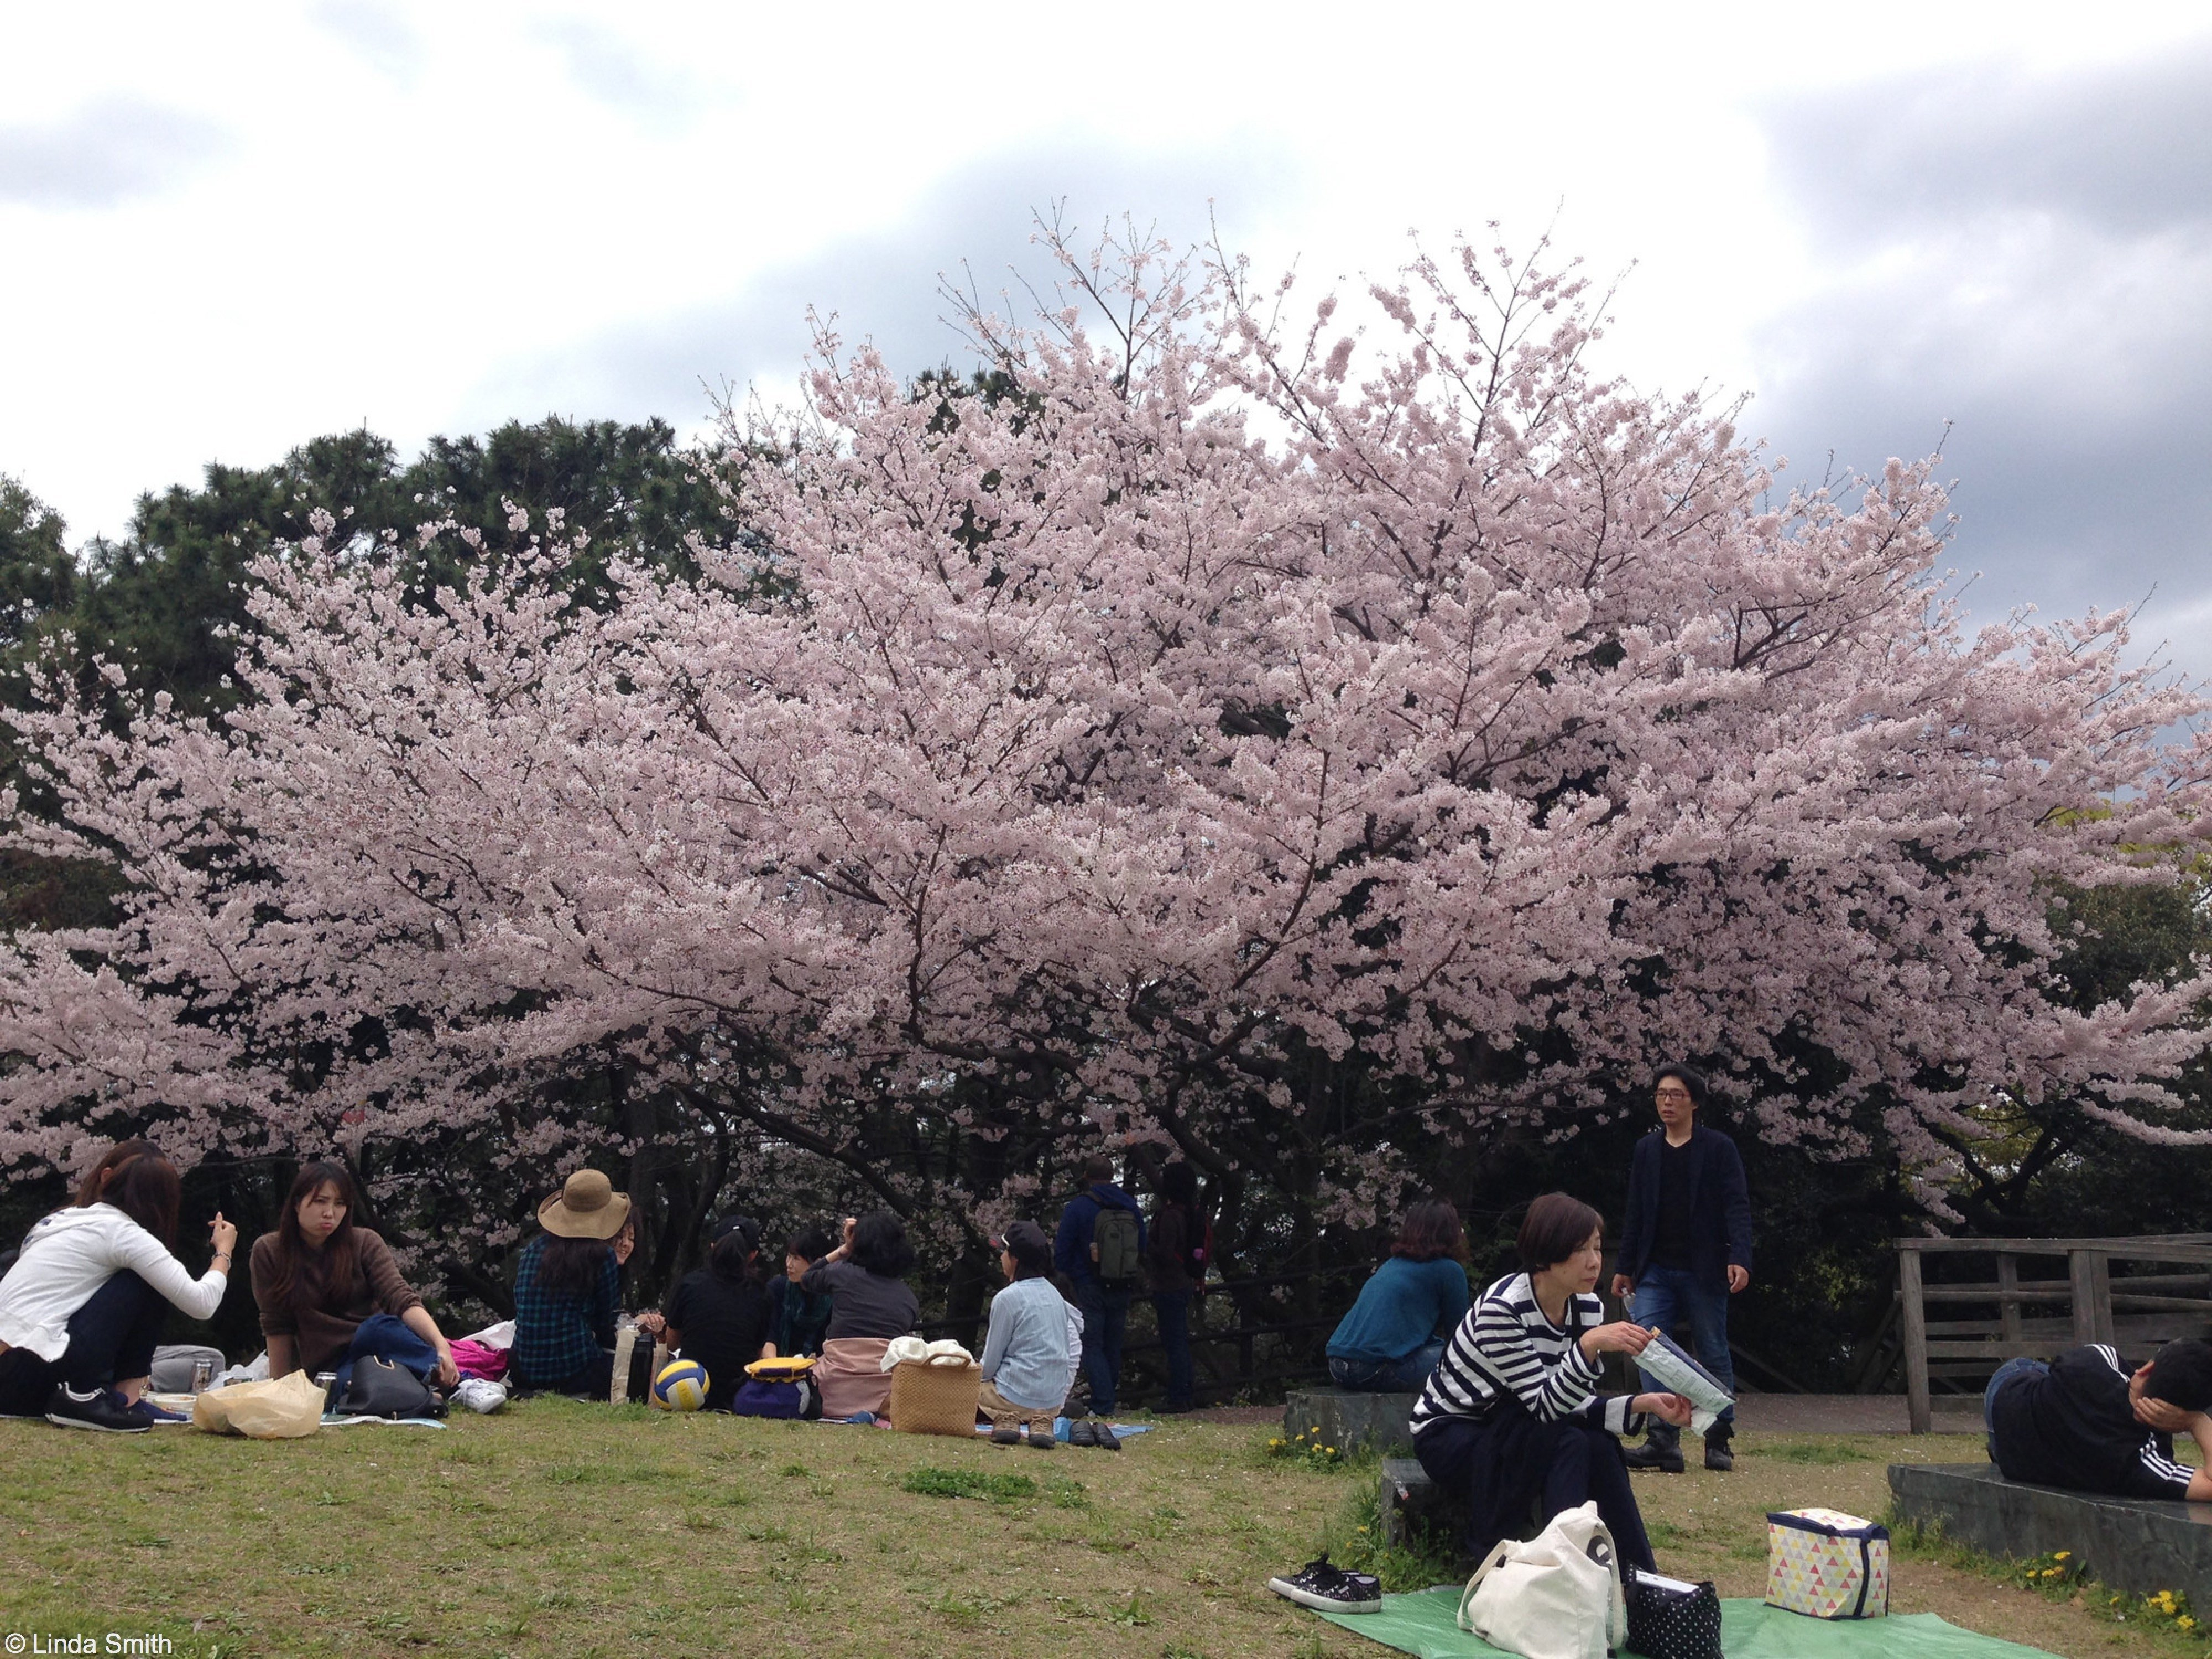 People gather beneath the blossom to picnic and celebrate Hamami